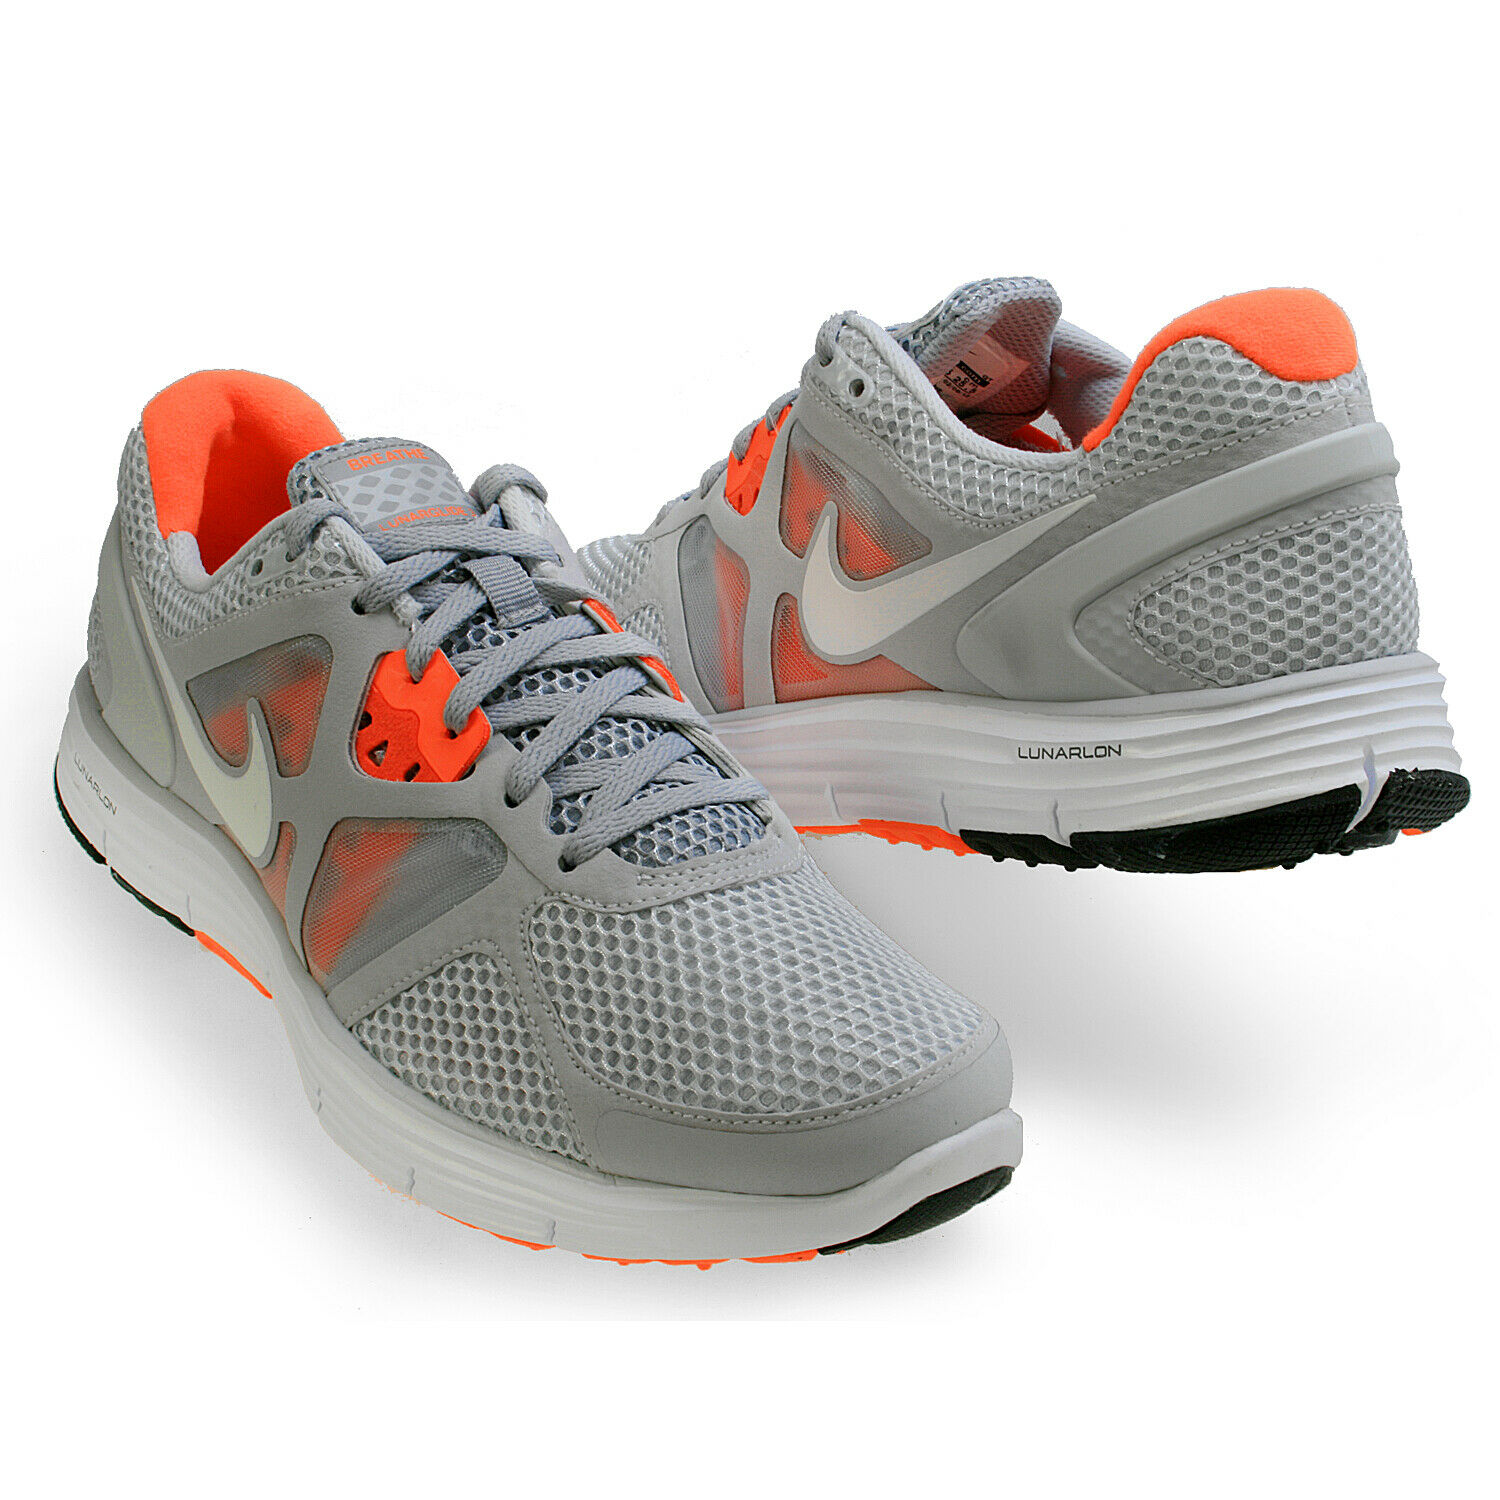 Nike Lunarglide 3 Breathe Grey & orange Men SZ 7.5 - 9 50% OFF